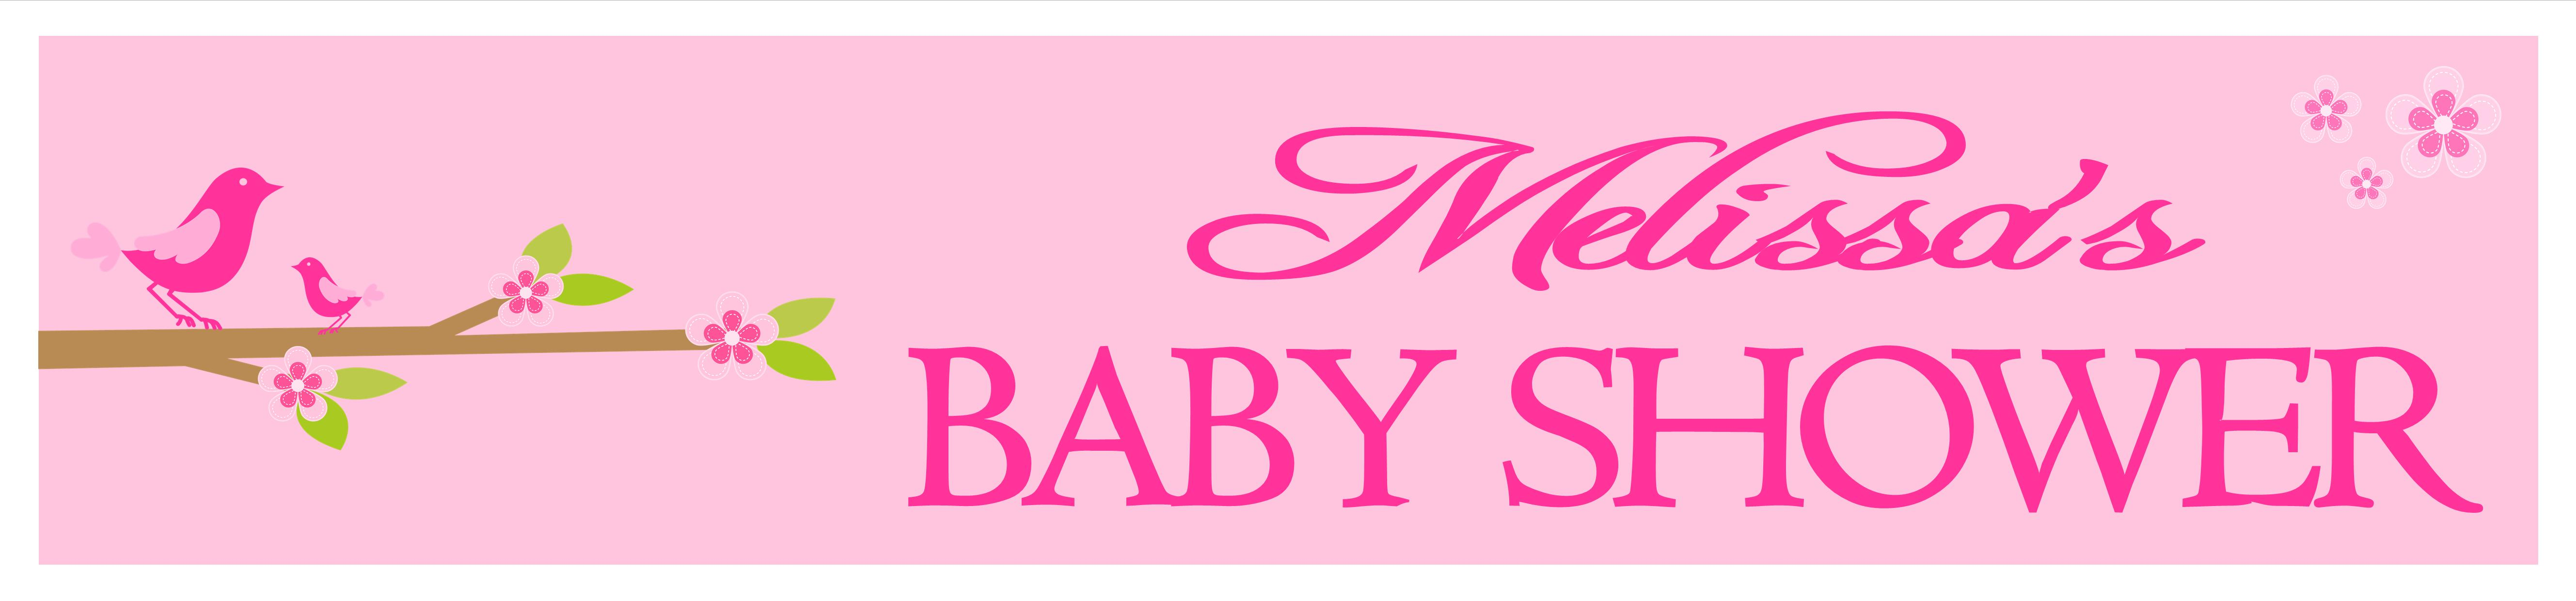 Personalised pink baby shower banner design 6 Baby shower banners